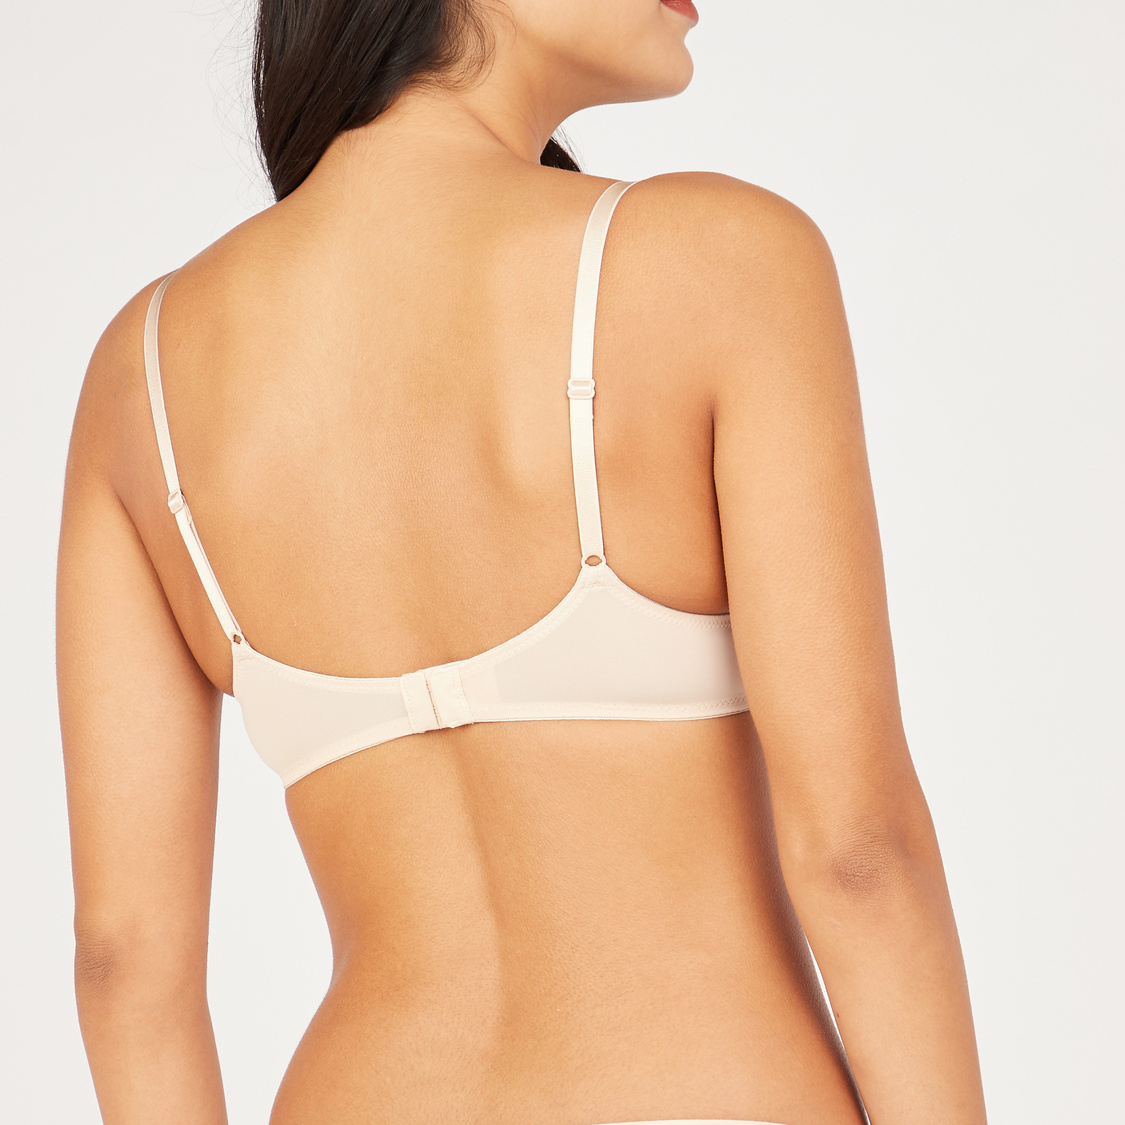 Set of 2 - Textured Plunge Bra with Hook and Eye Closure